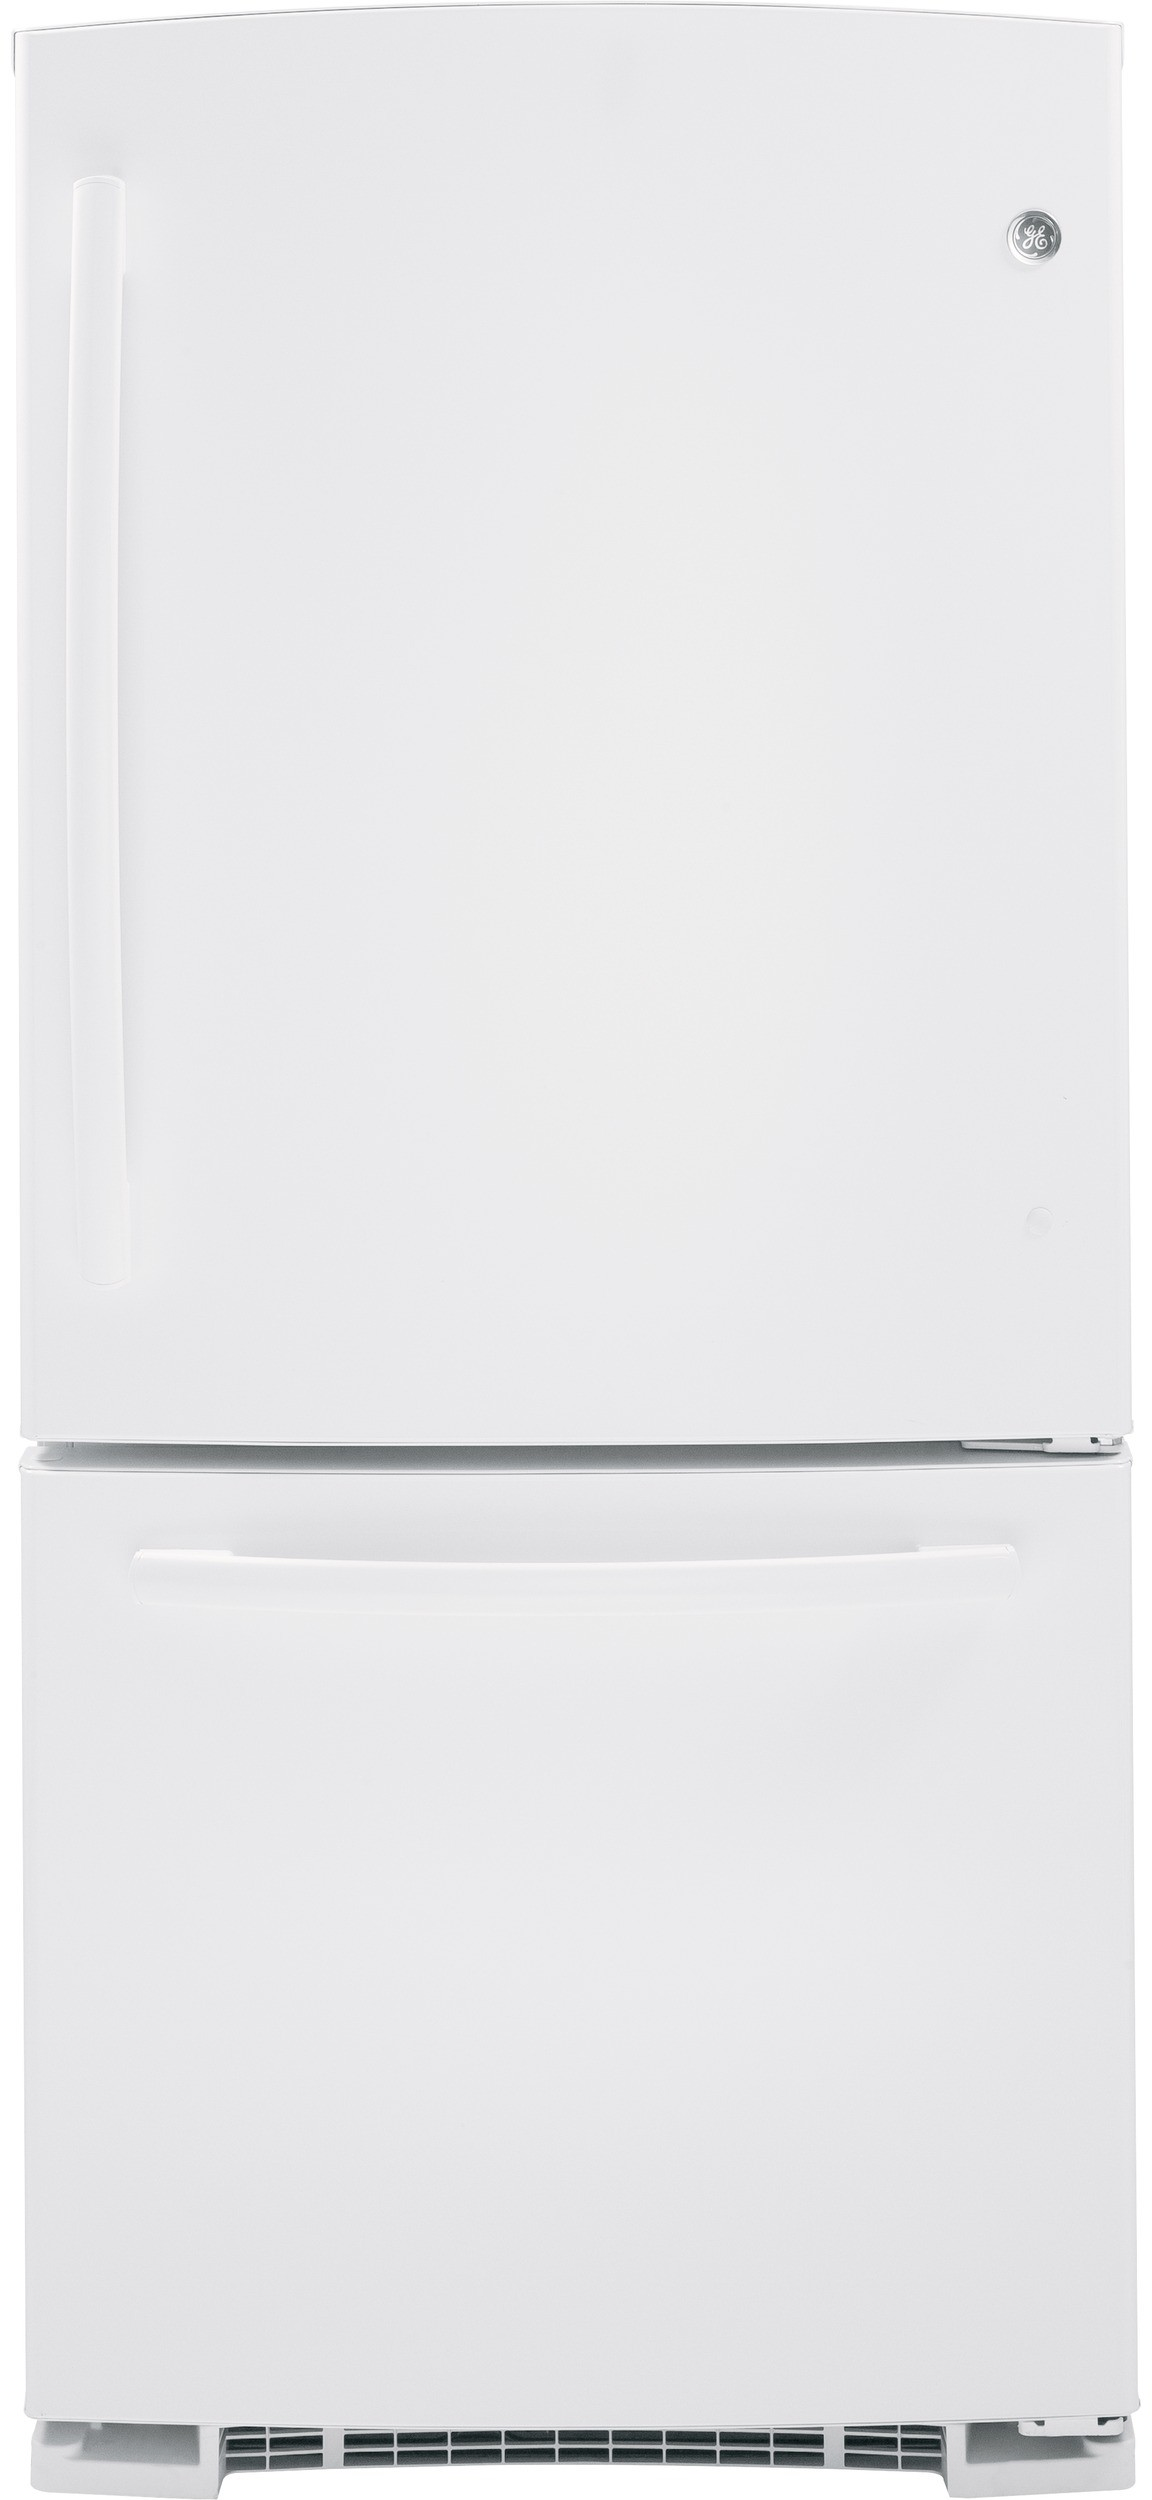 GE GDE23GGHWW 33 Inch Bottom-Freezer Refrigerator with 23